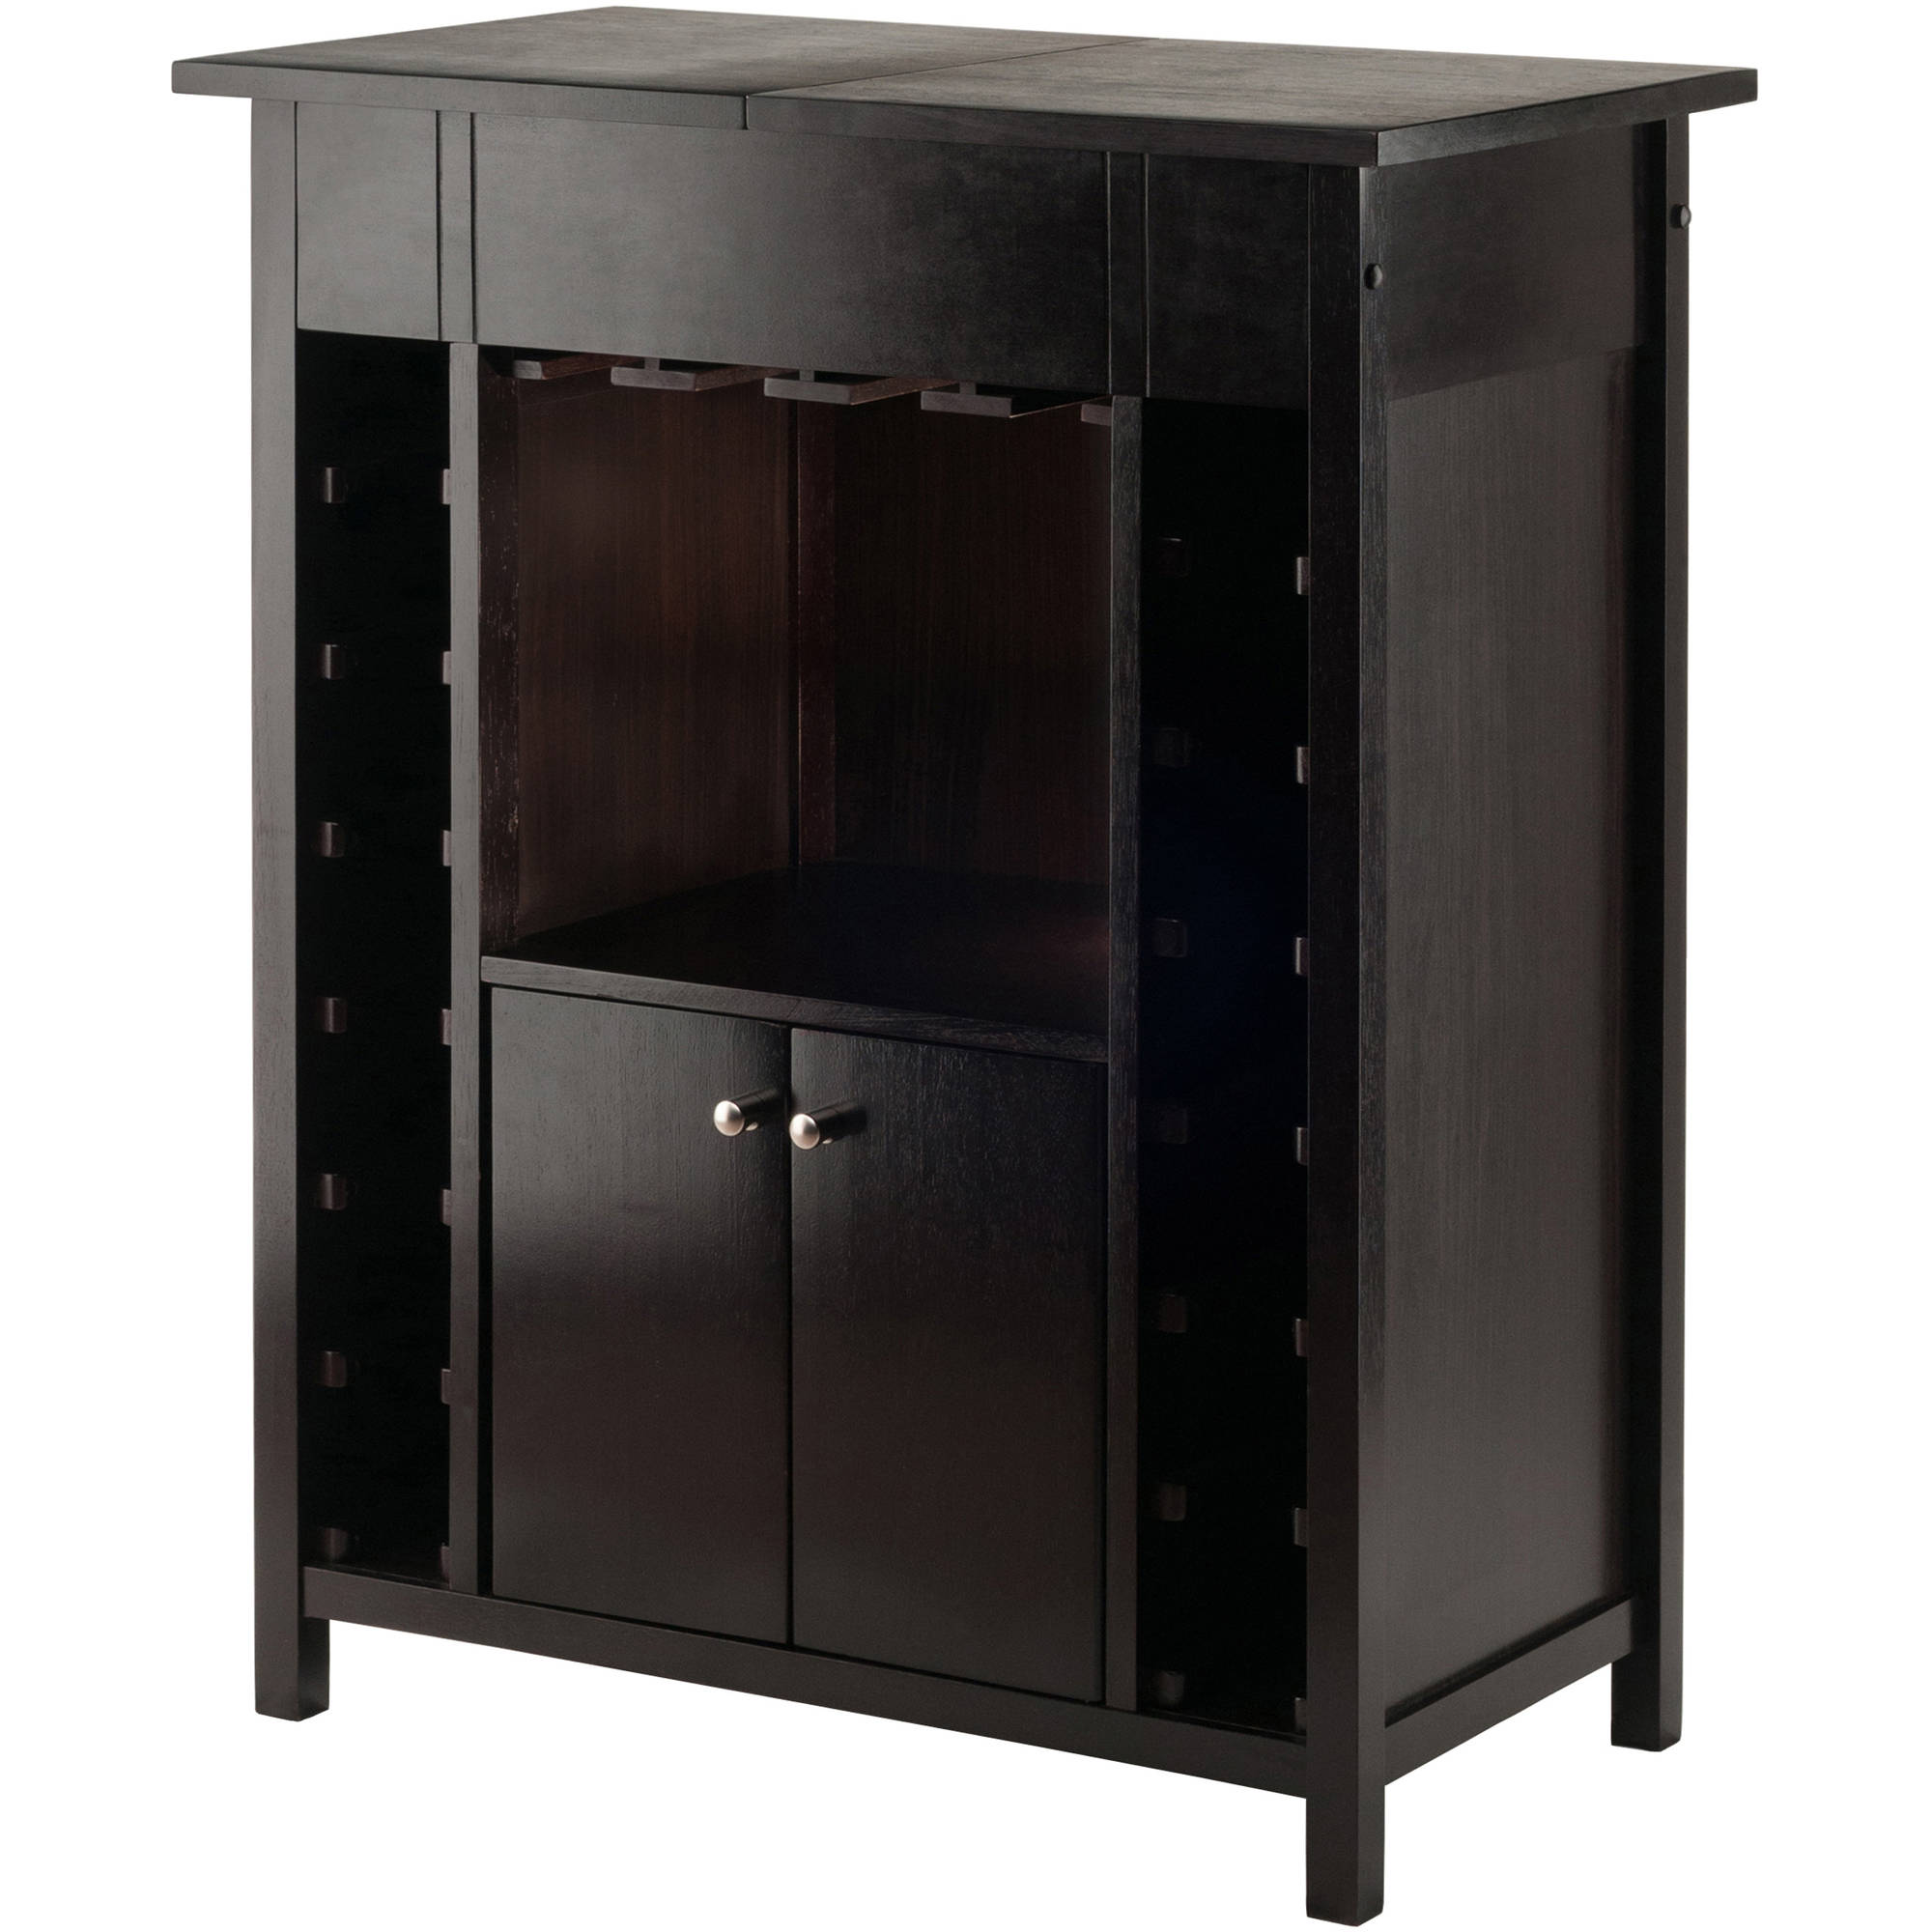 Winsome Wood Yukon Display Wine Cabinet with Expandable Top, Espresso